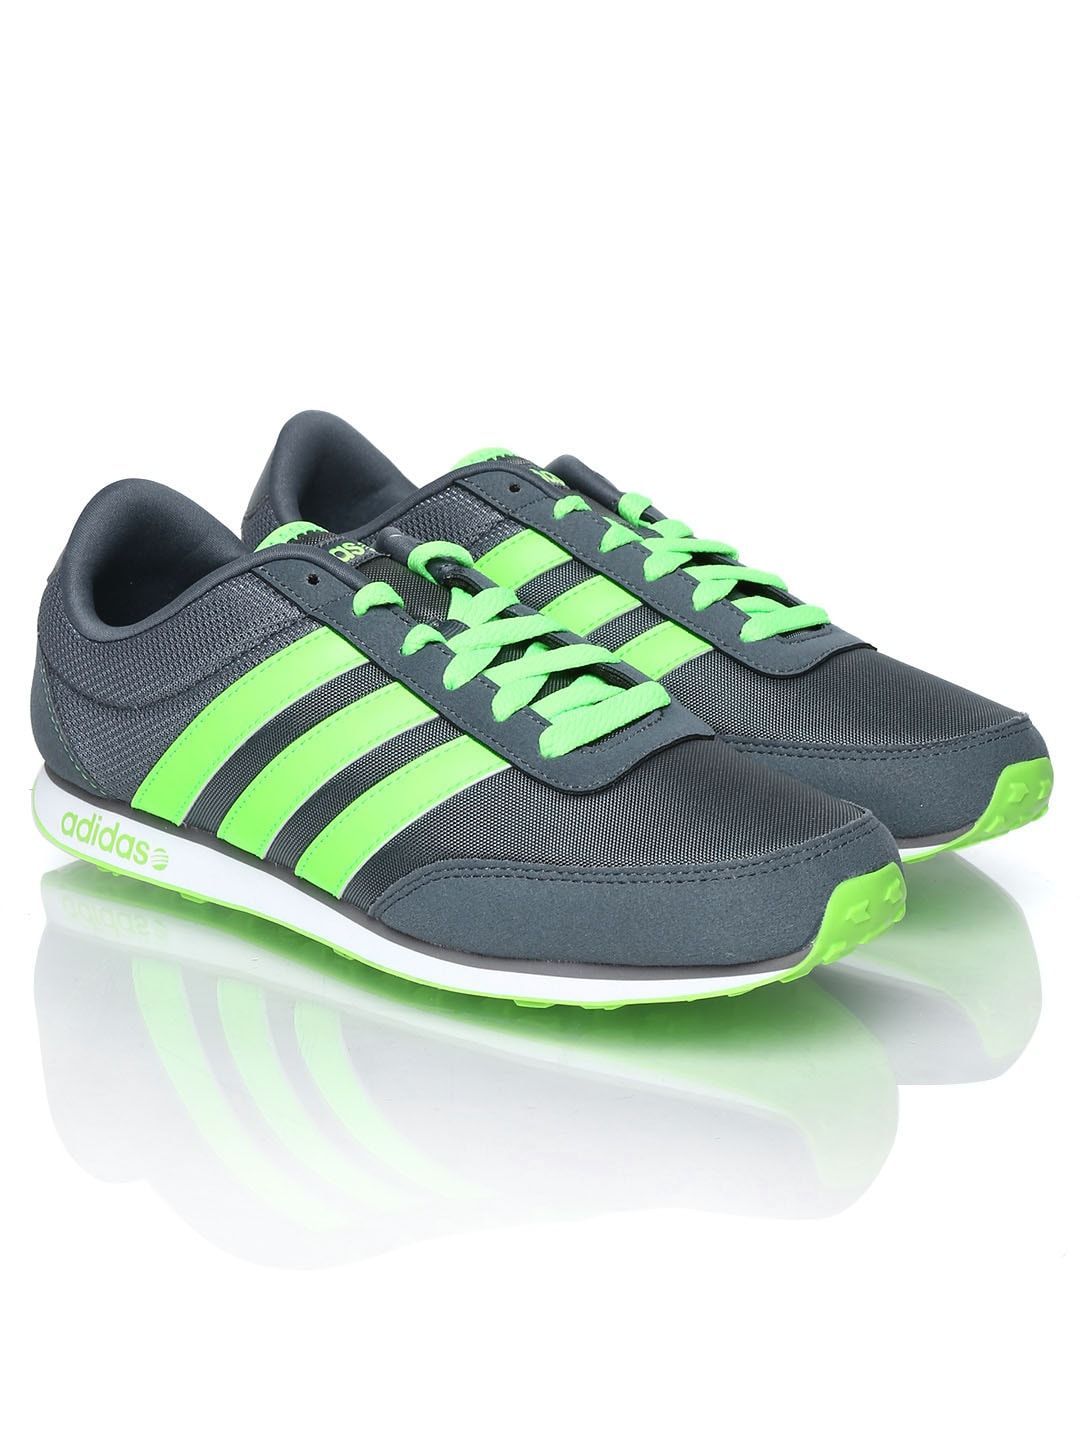 Adidas neo f97912 Men Grey V Racer Casual Shoes - Best